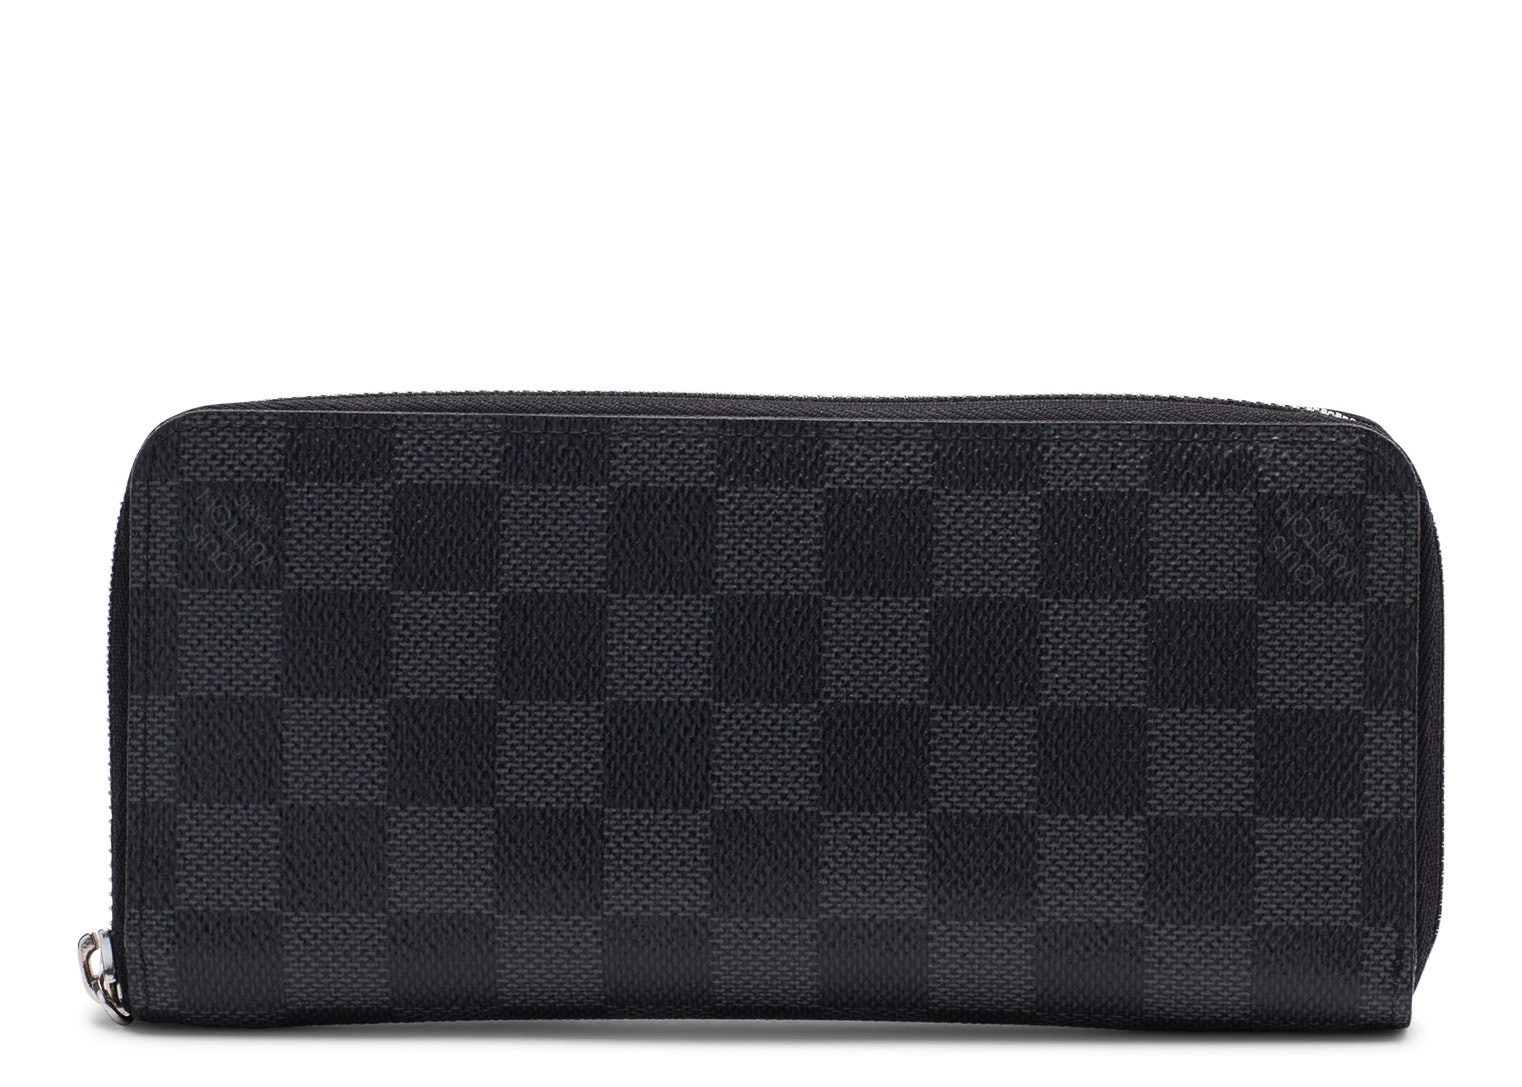 Louis Vuitton Zippy Vertical Damier Graphite Black